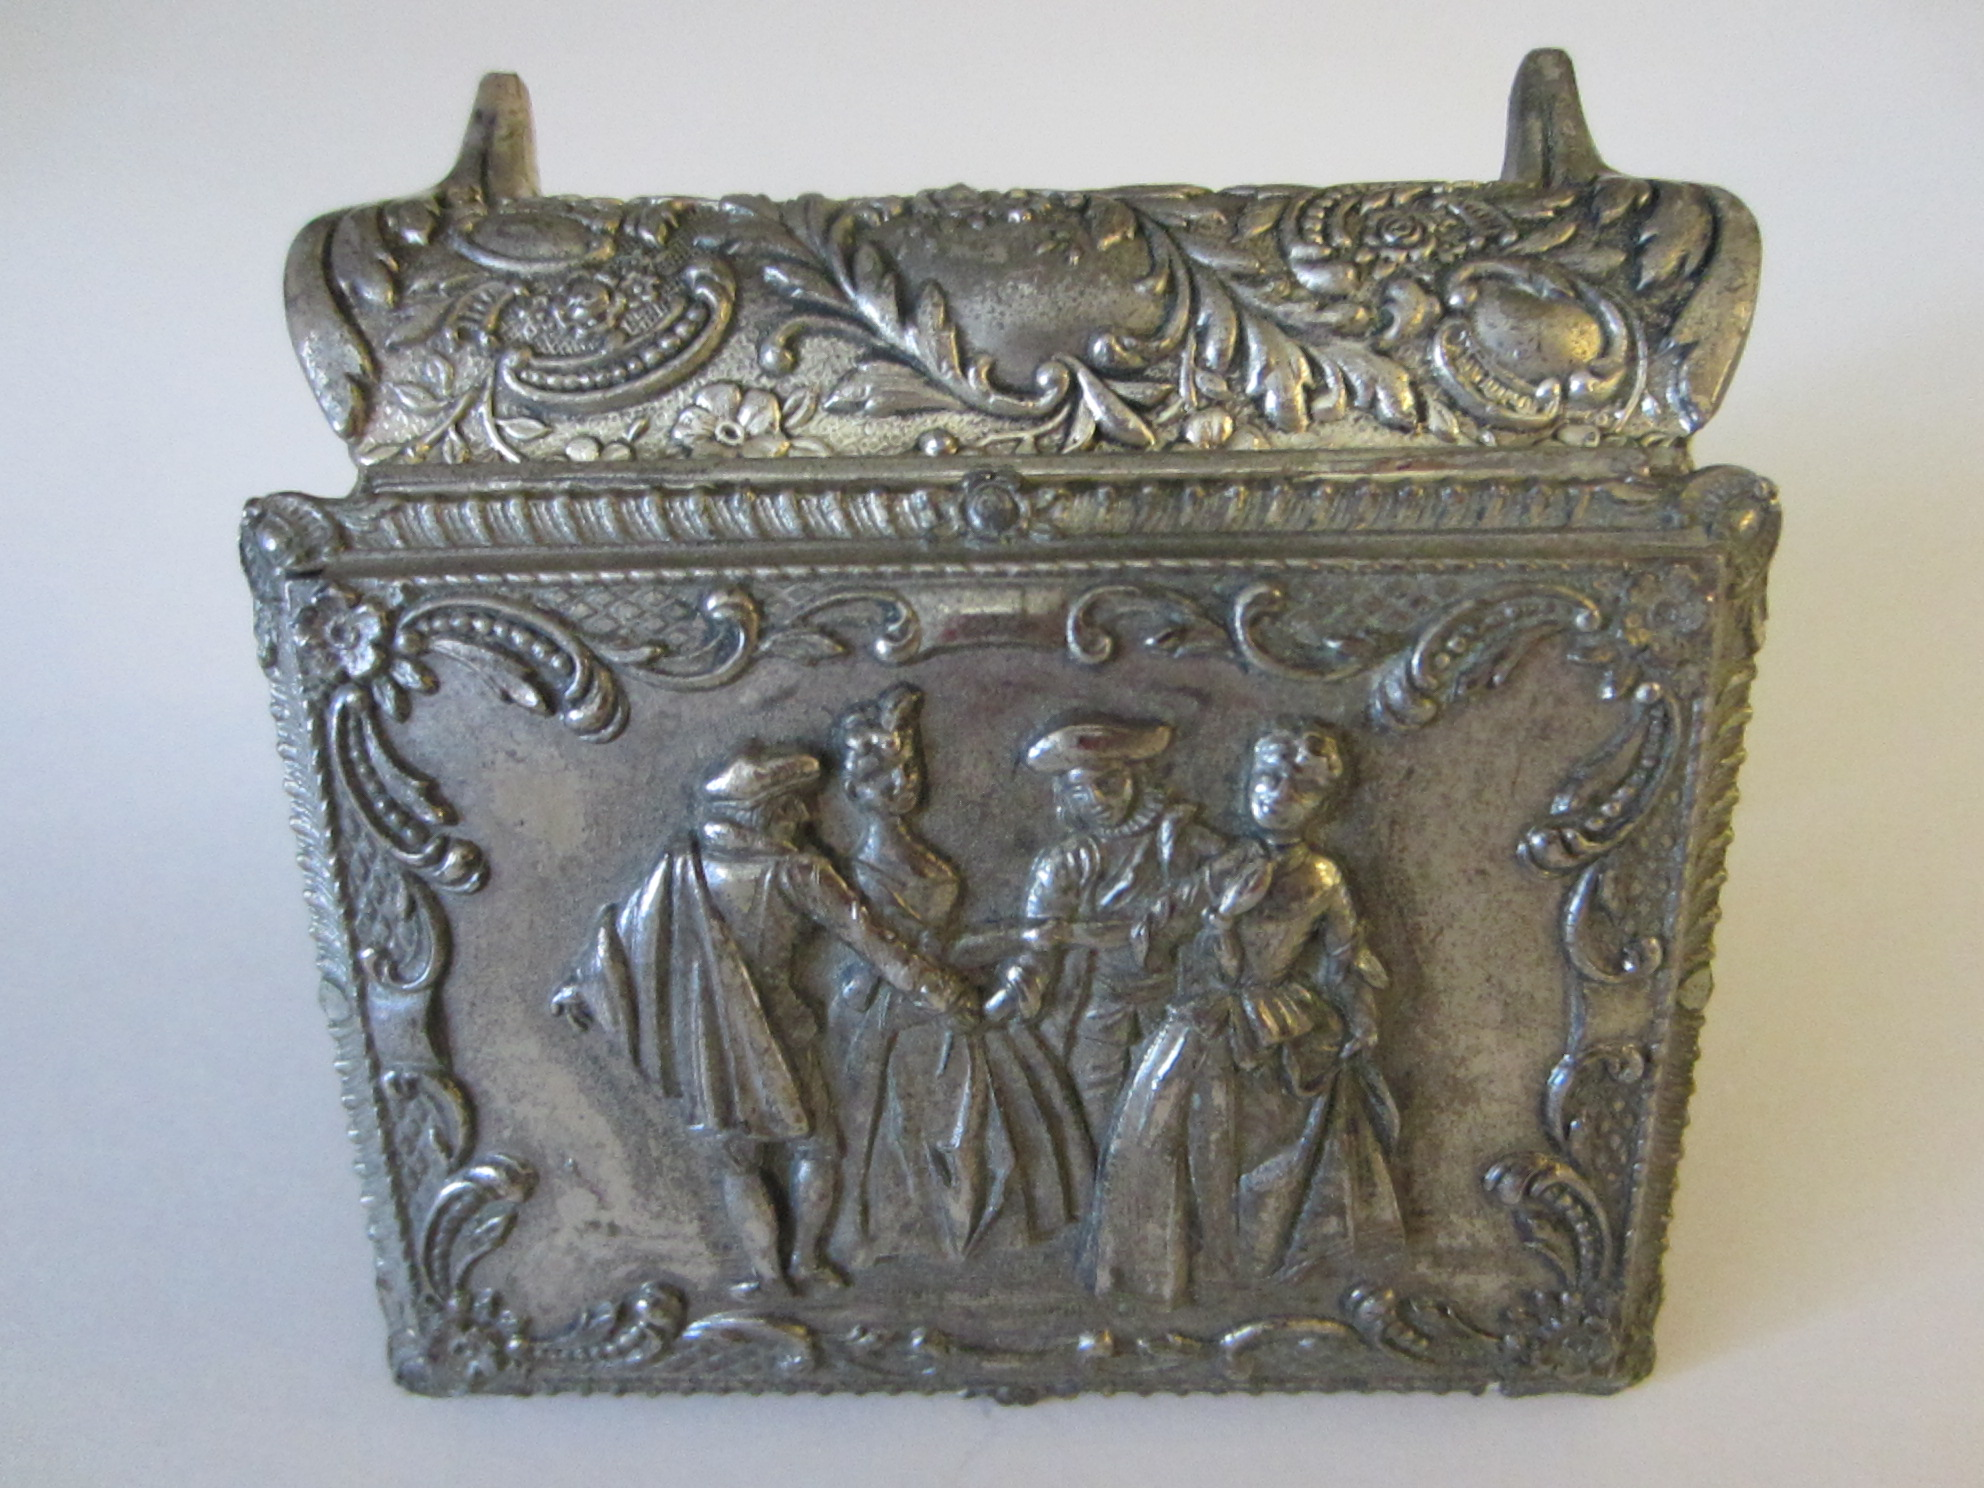 Vintage Style Jewellery Box Victorian Style Silver Jewelry Box Figurative Floral Theme